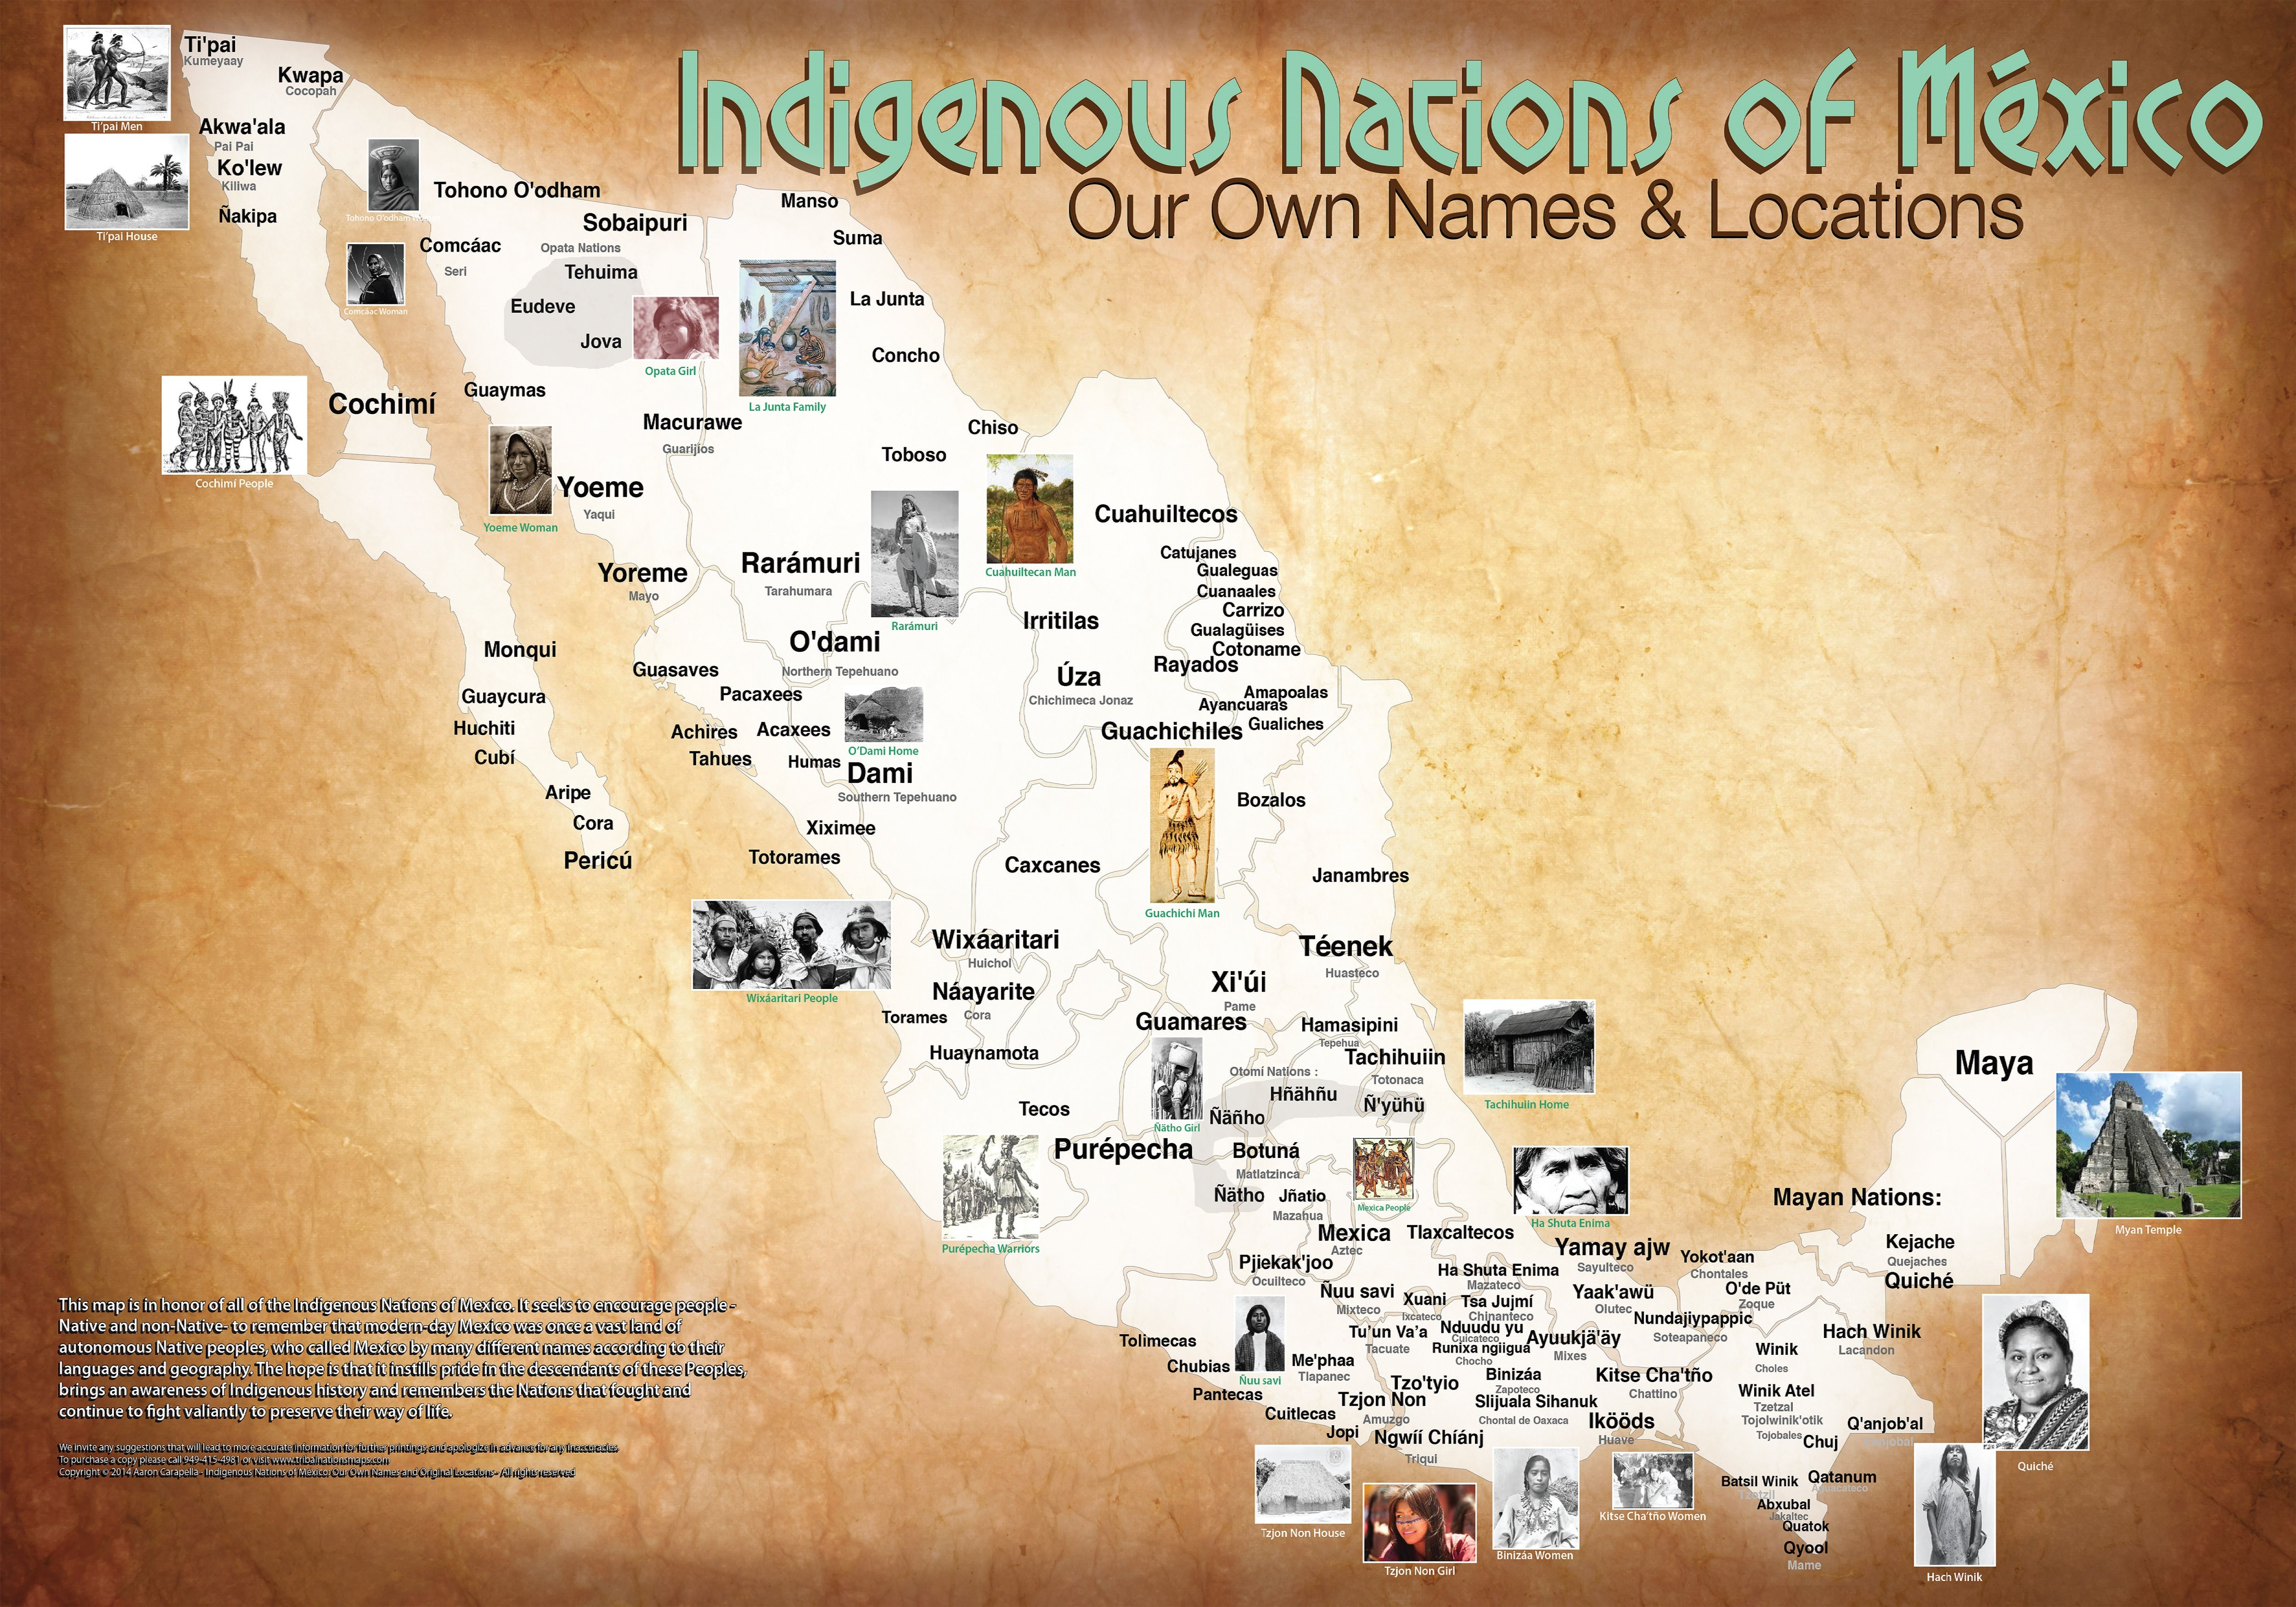 Indigenous Tribes Of Mexico Map.Pin By Ali Hajipour On Infographics Native American Tribes Native